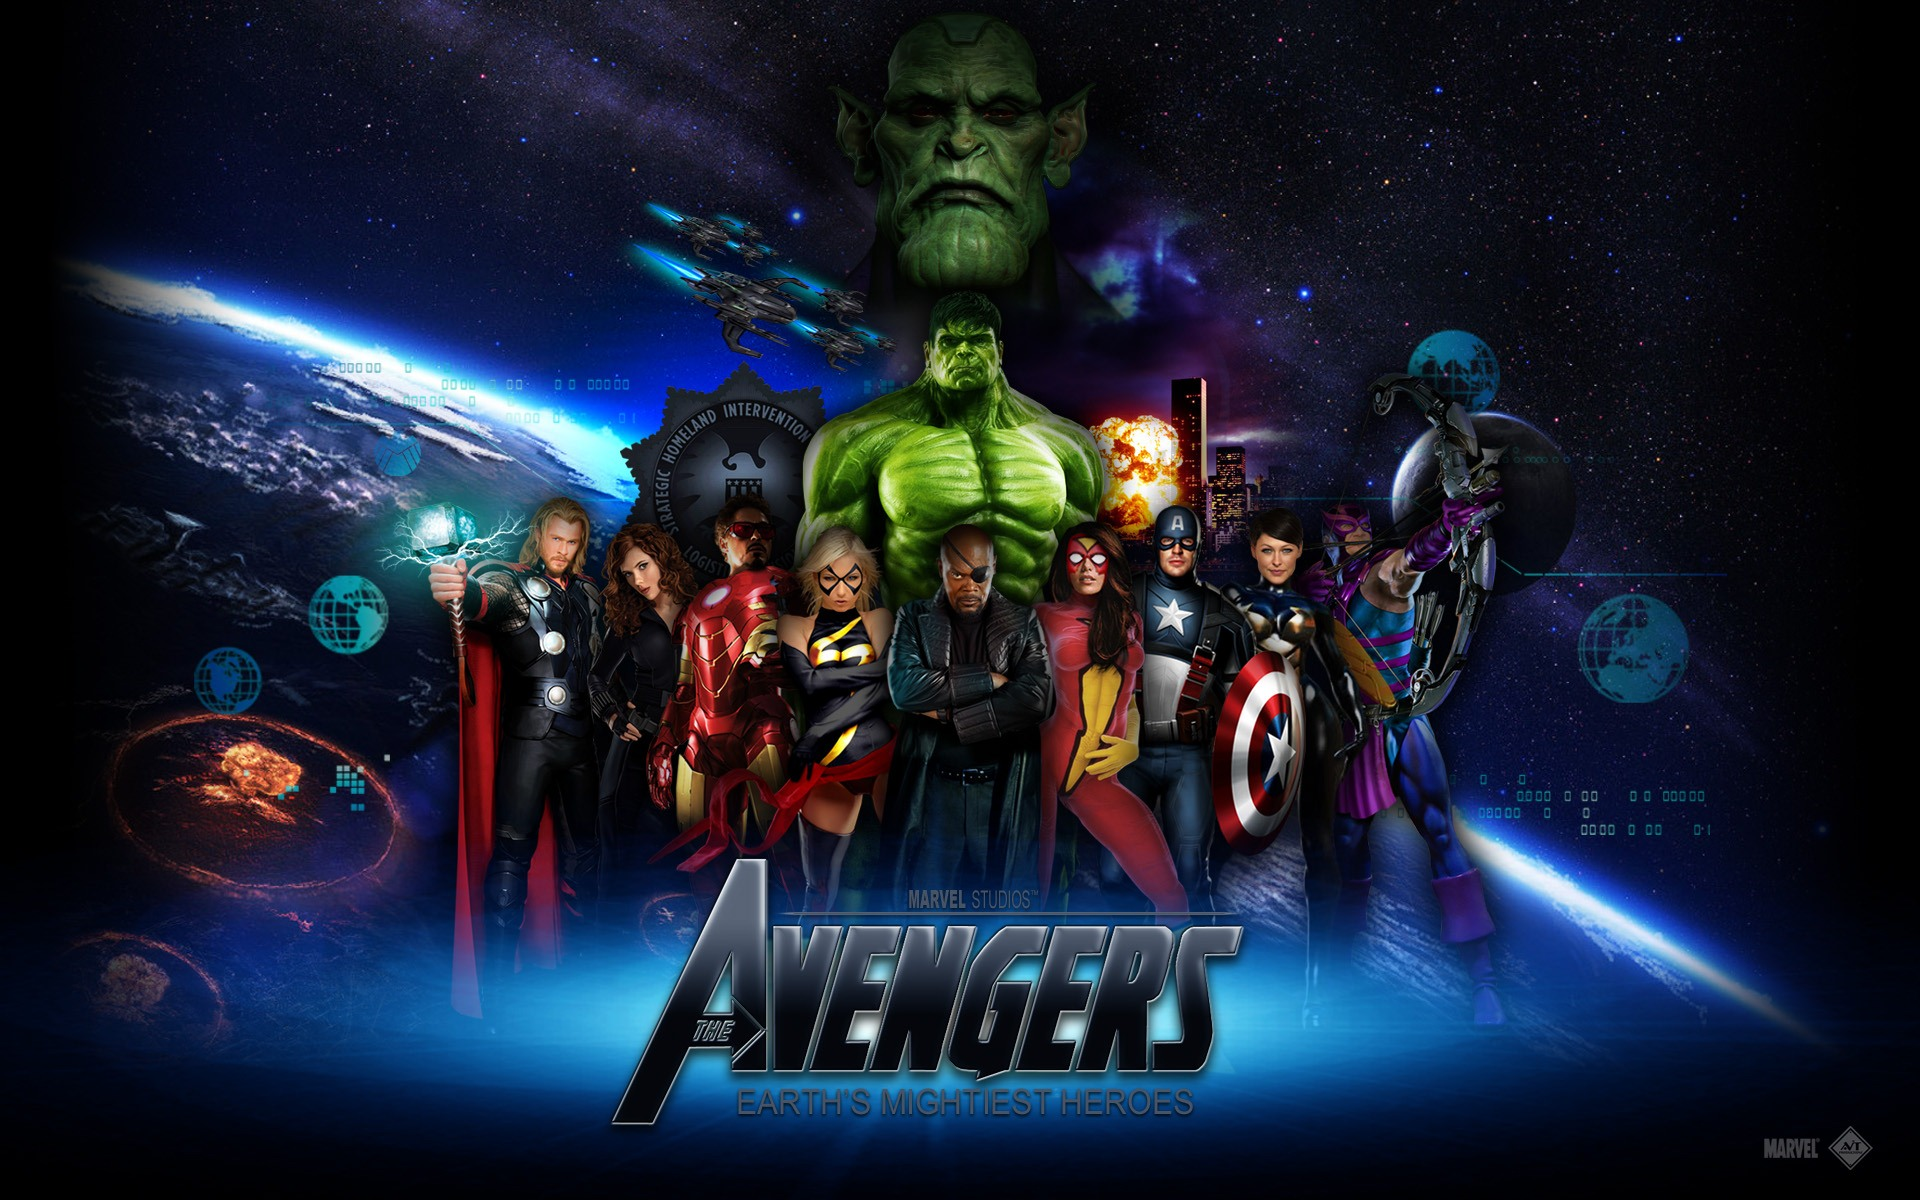 70 Avengers Wallpaper Hd On Wallpapersafari